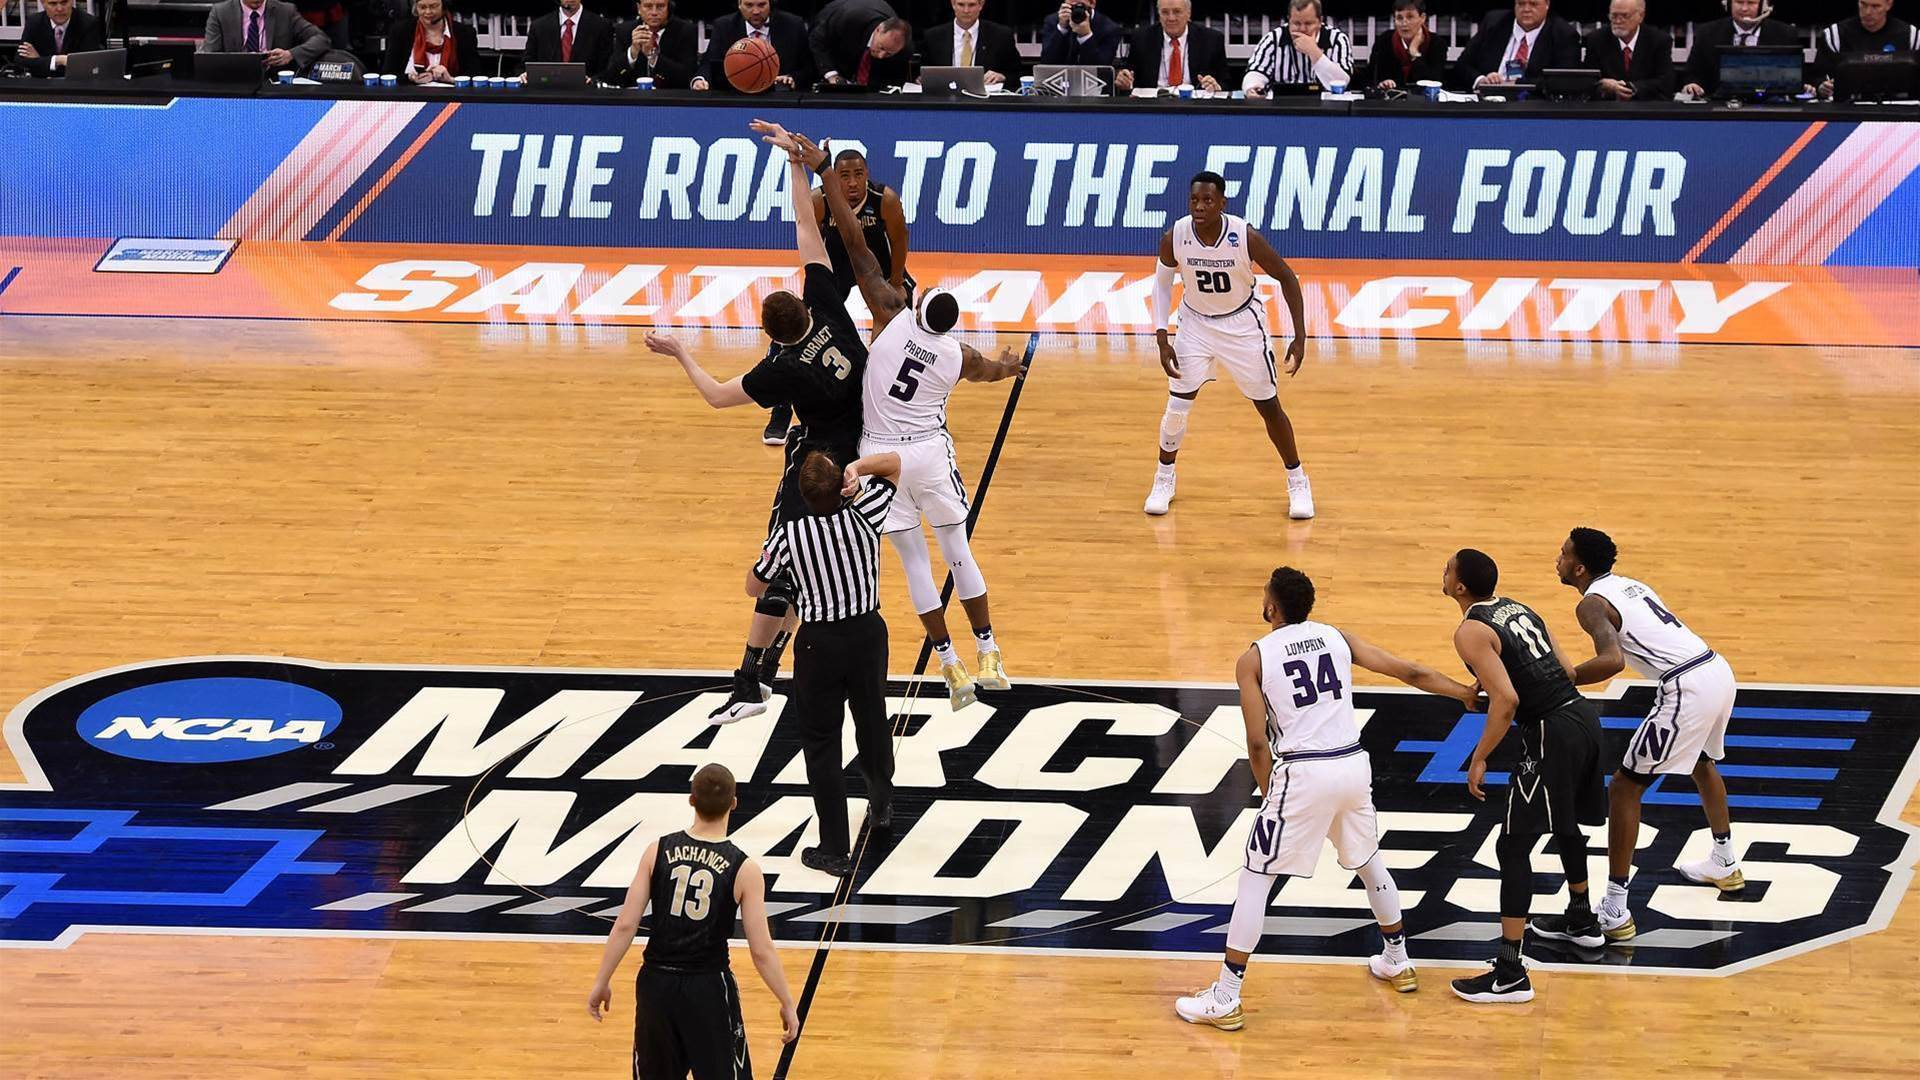 Basketball: March of time